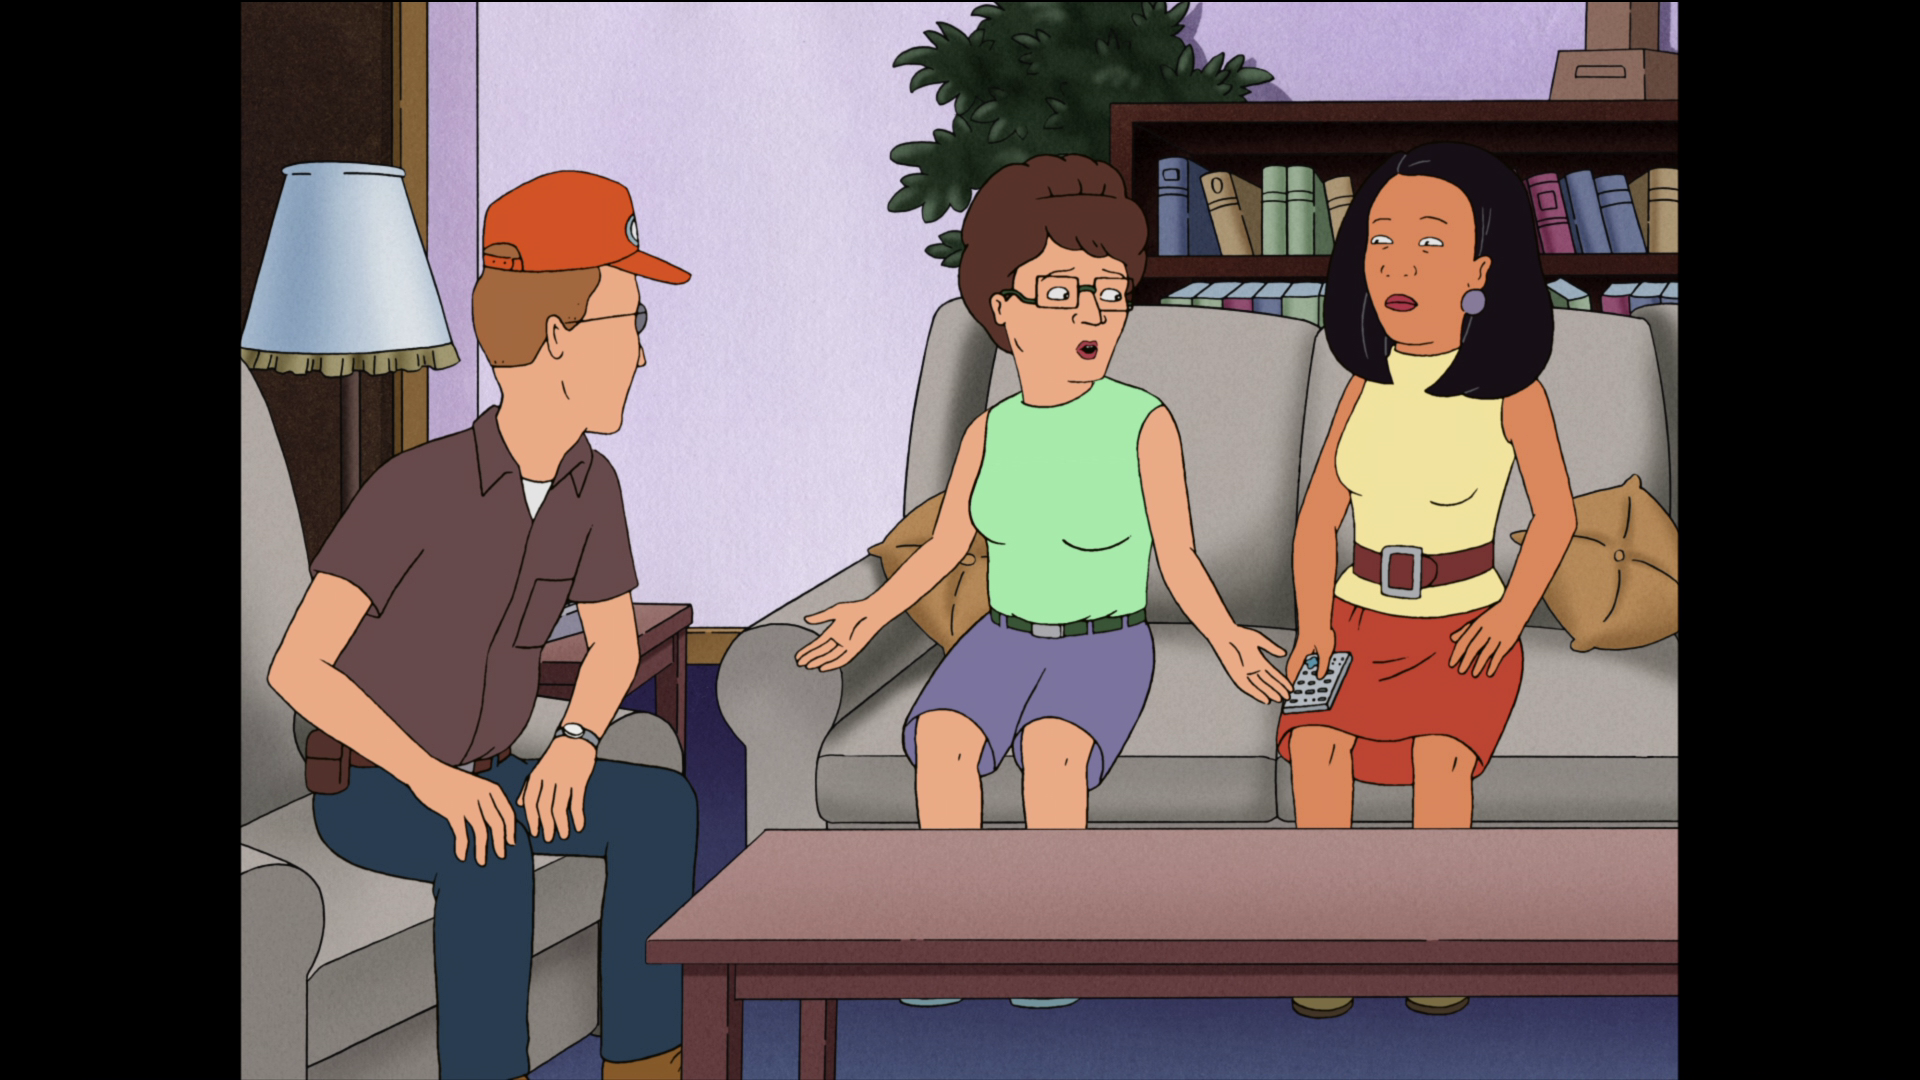 King of the Hill S13E06 BluRay REMUX 1080p AVC DTS-HD MA 5.1 - KRaLiMaRKo